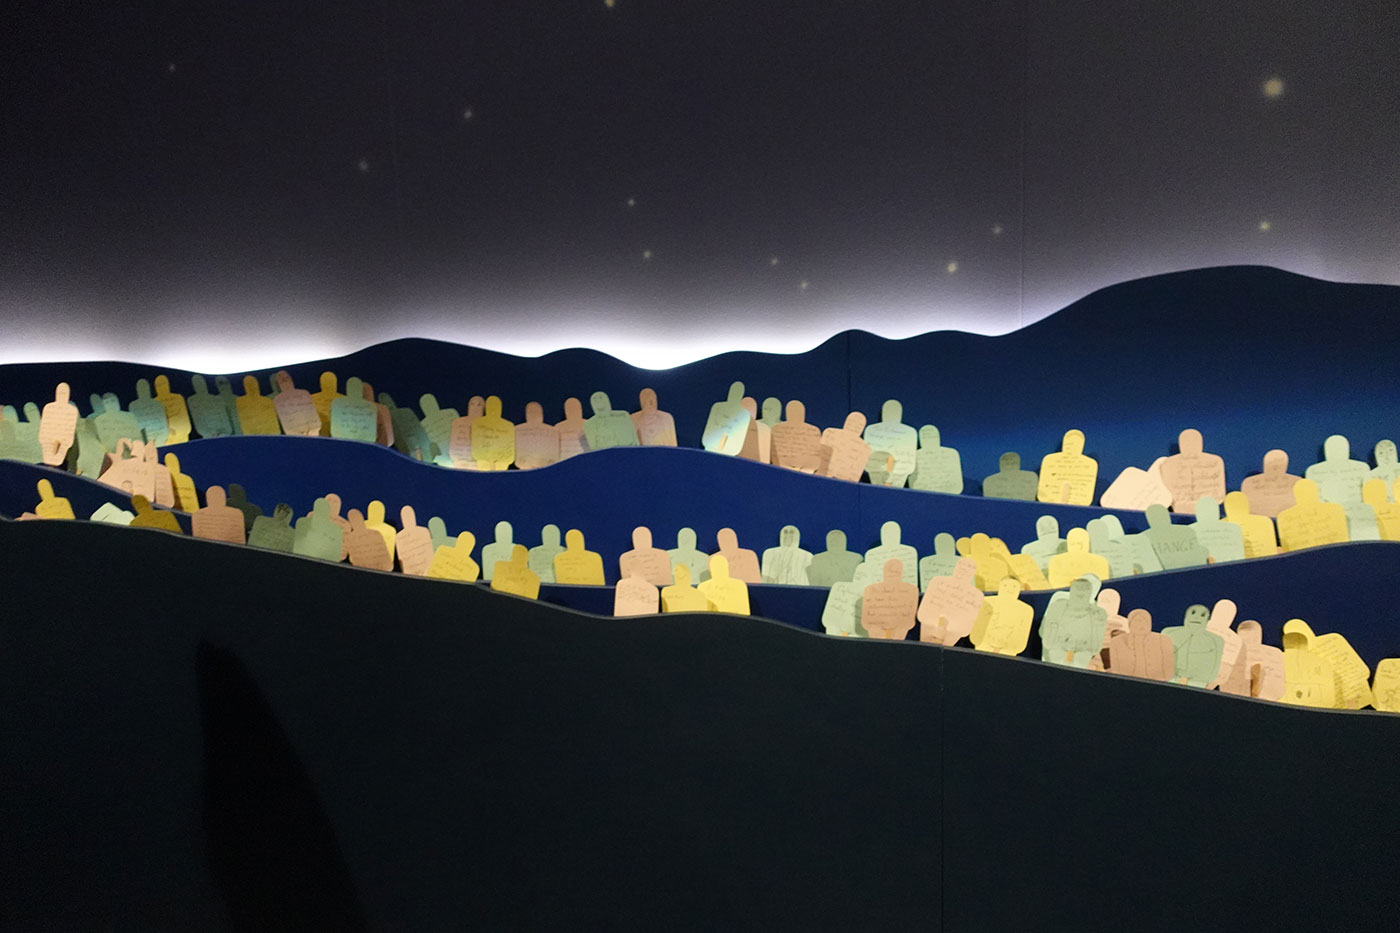 Exhibition display featuring multiple pieces of coloured paper cut out in the shape of people with hand written messages. They are positioned amongst a stylised landscape of mountains and a star-lit sky. - click to view larger image